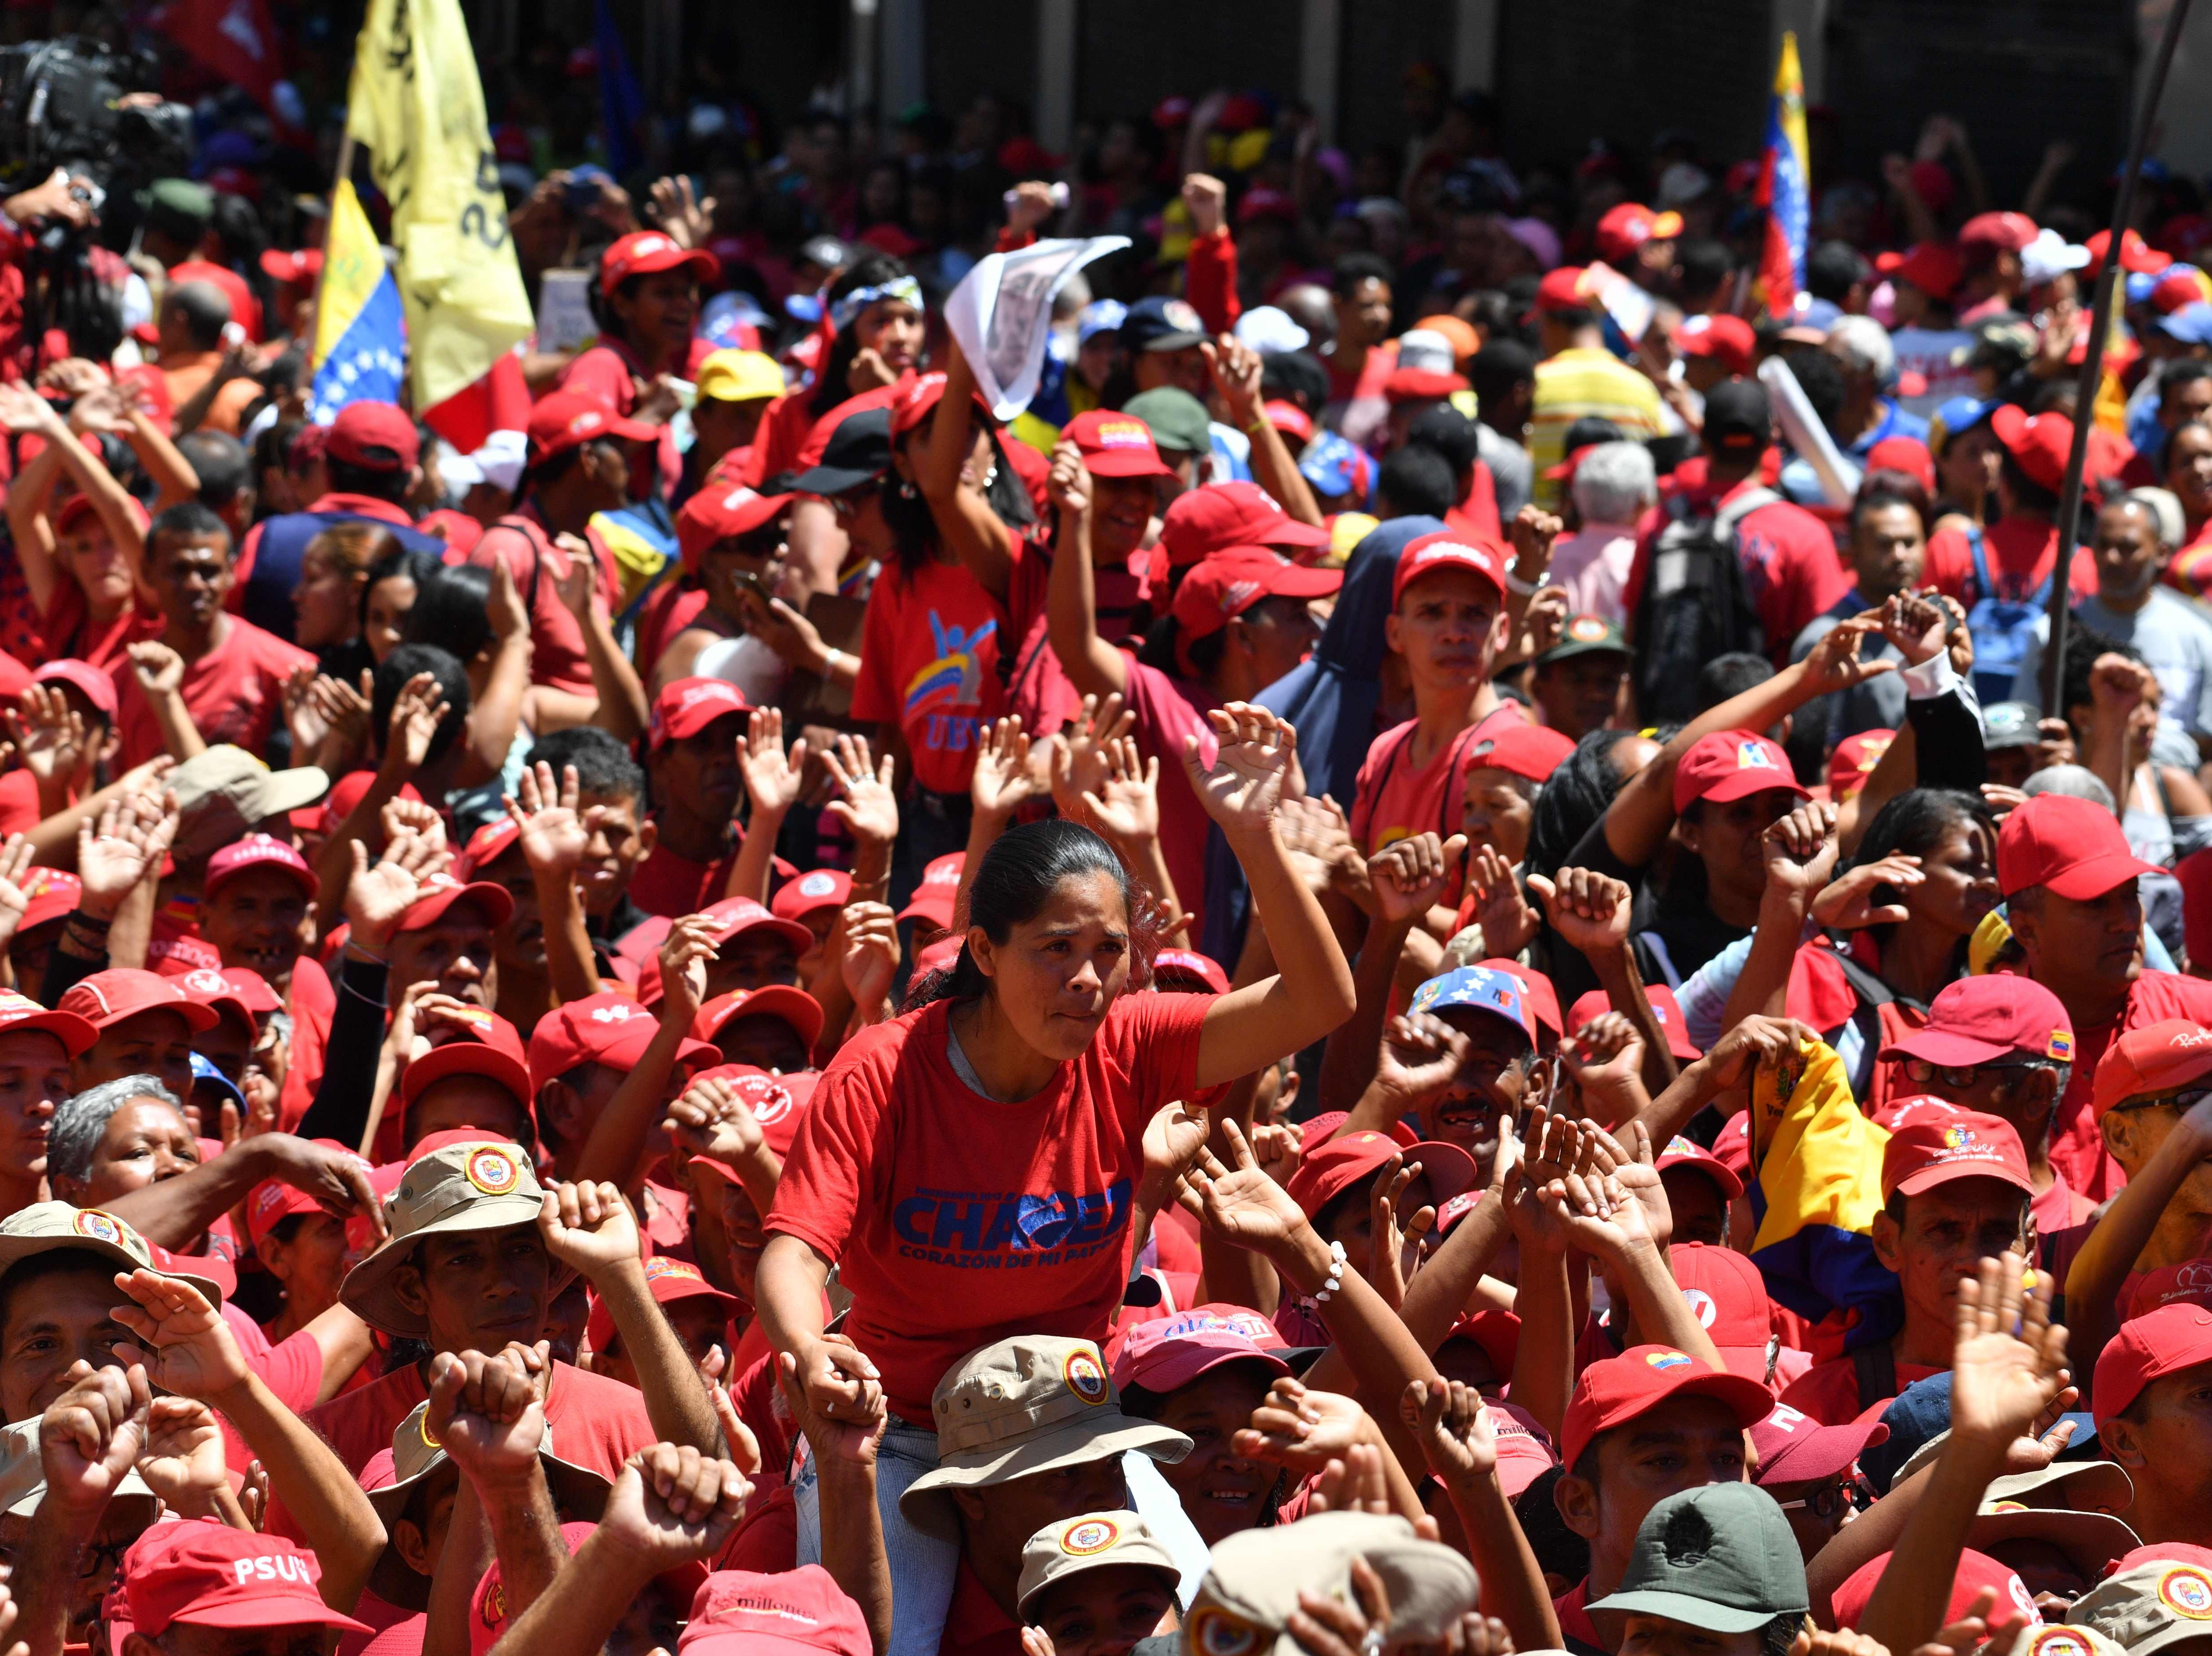 Supporters of Venezuelan President Nicolas Maduro take part in a march in Caracas, on Feb. 23, 2019.